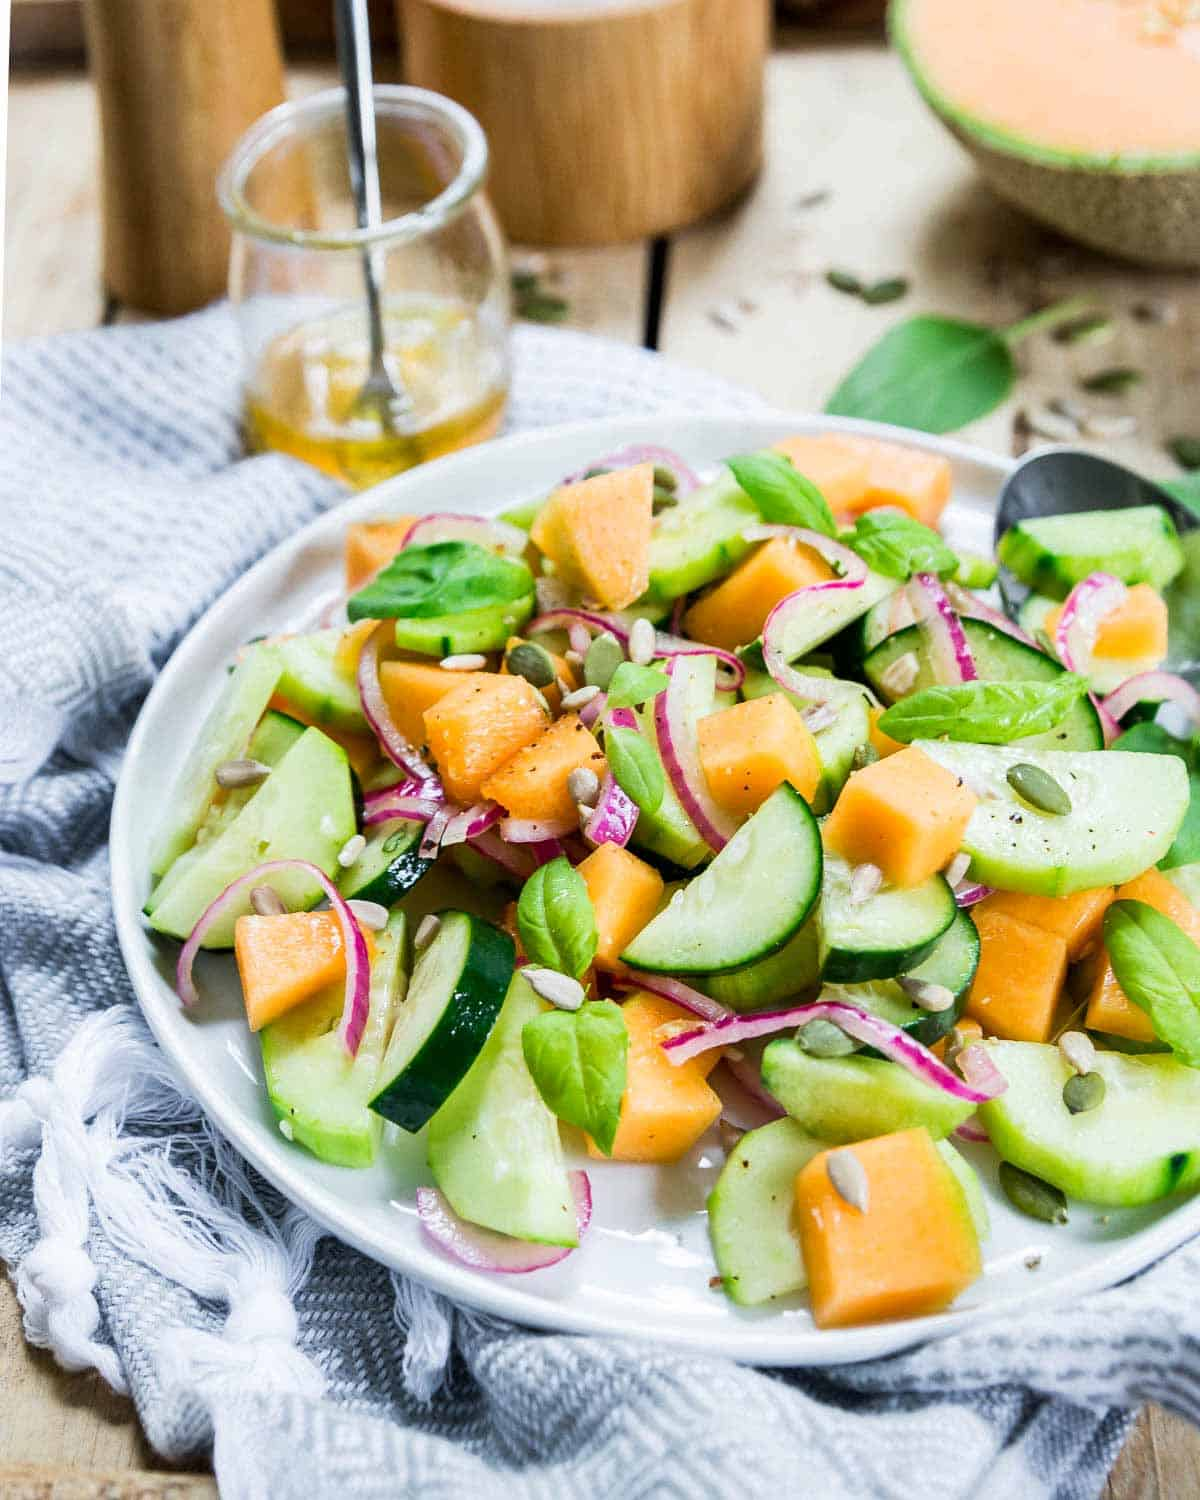 This cucumber melon salad is a great summer salad. With pickled onions and sweet, ripe cantaloupe, it goes great alongside any grilled meat.